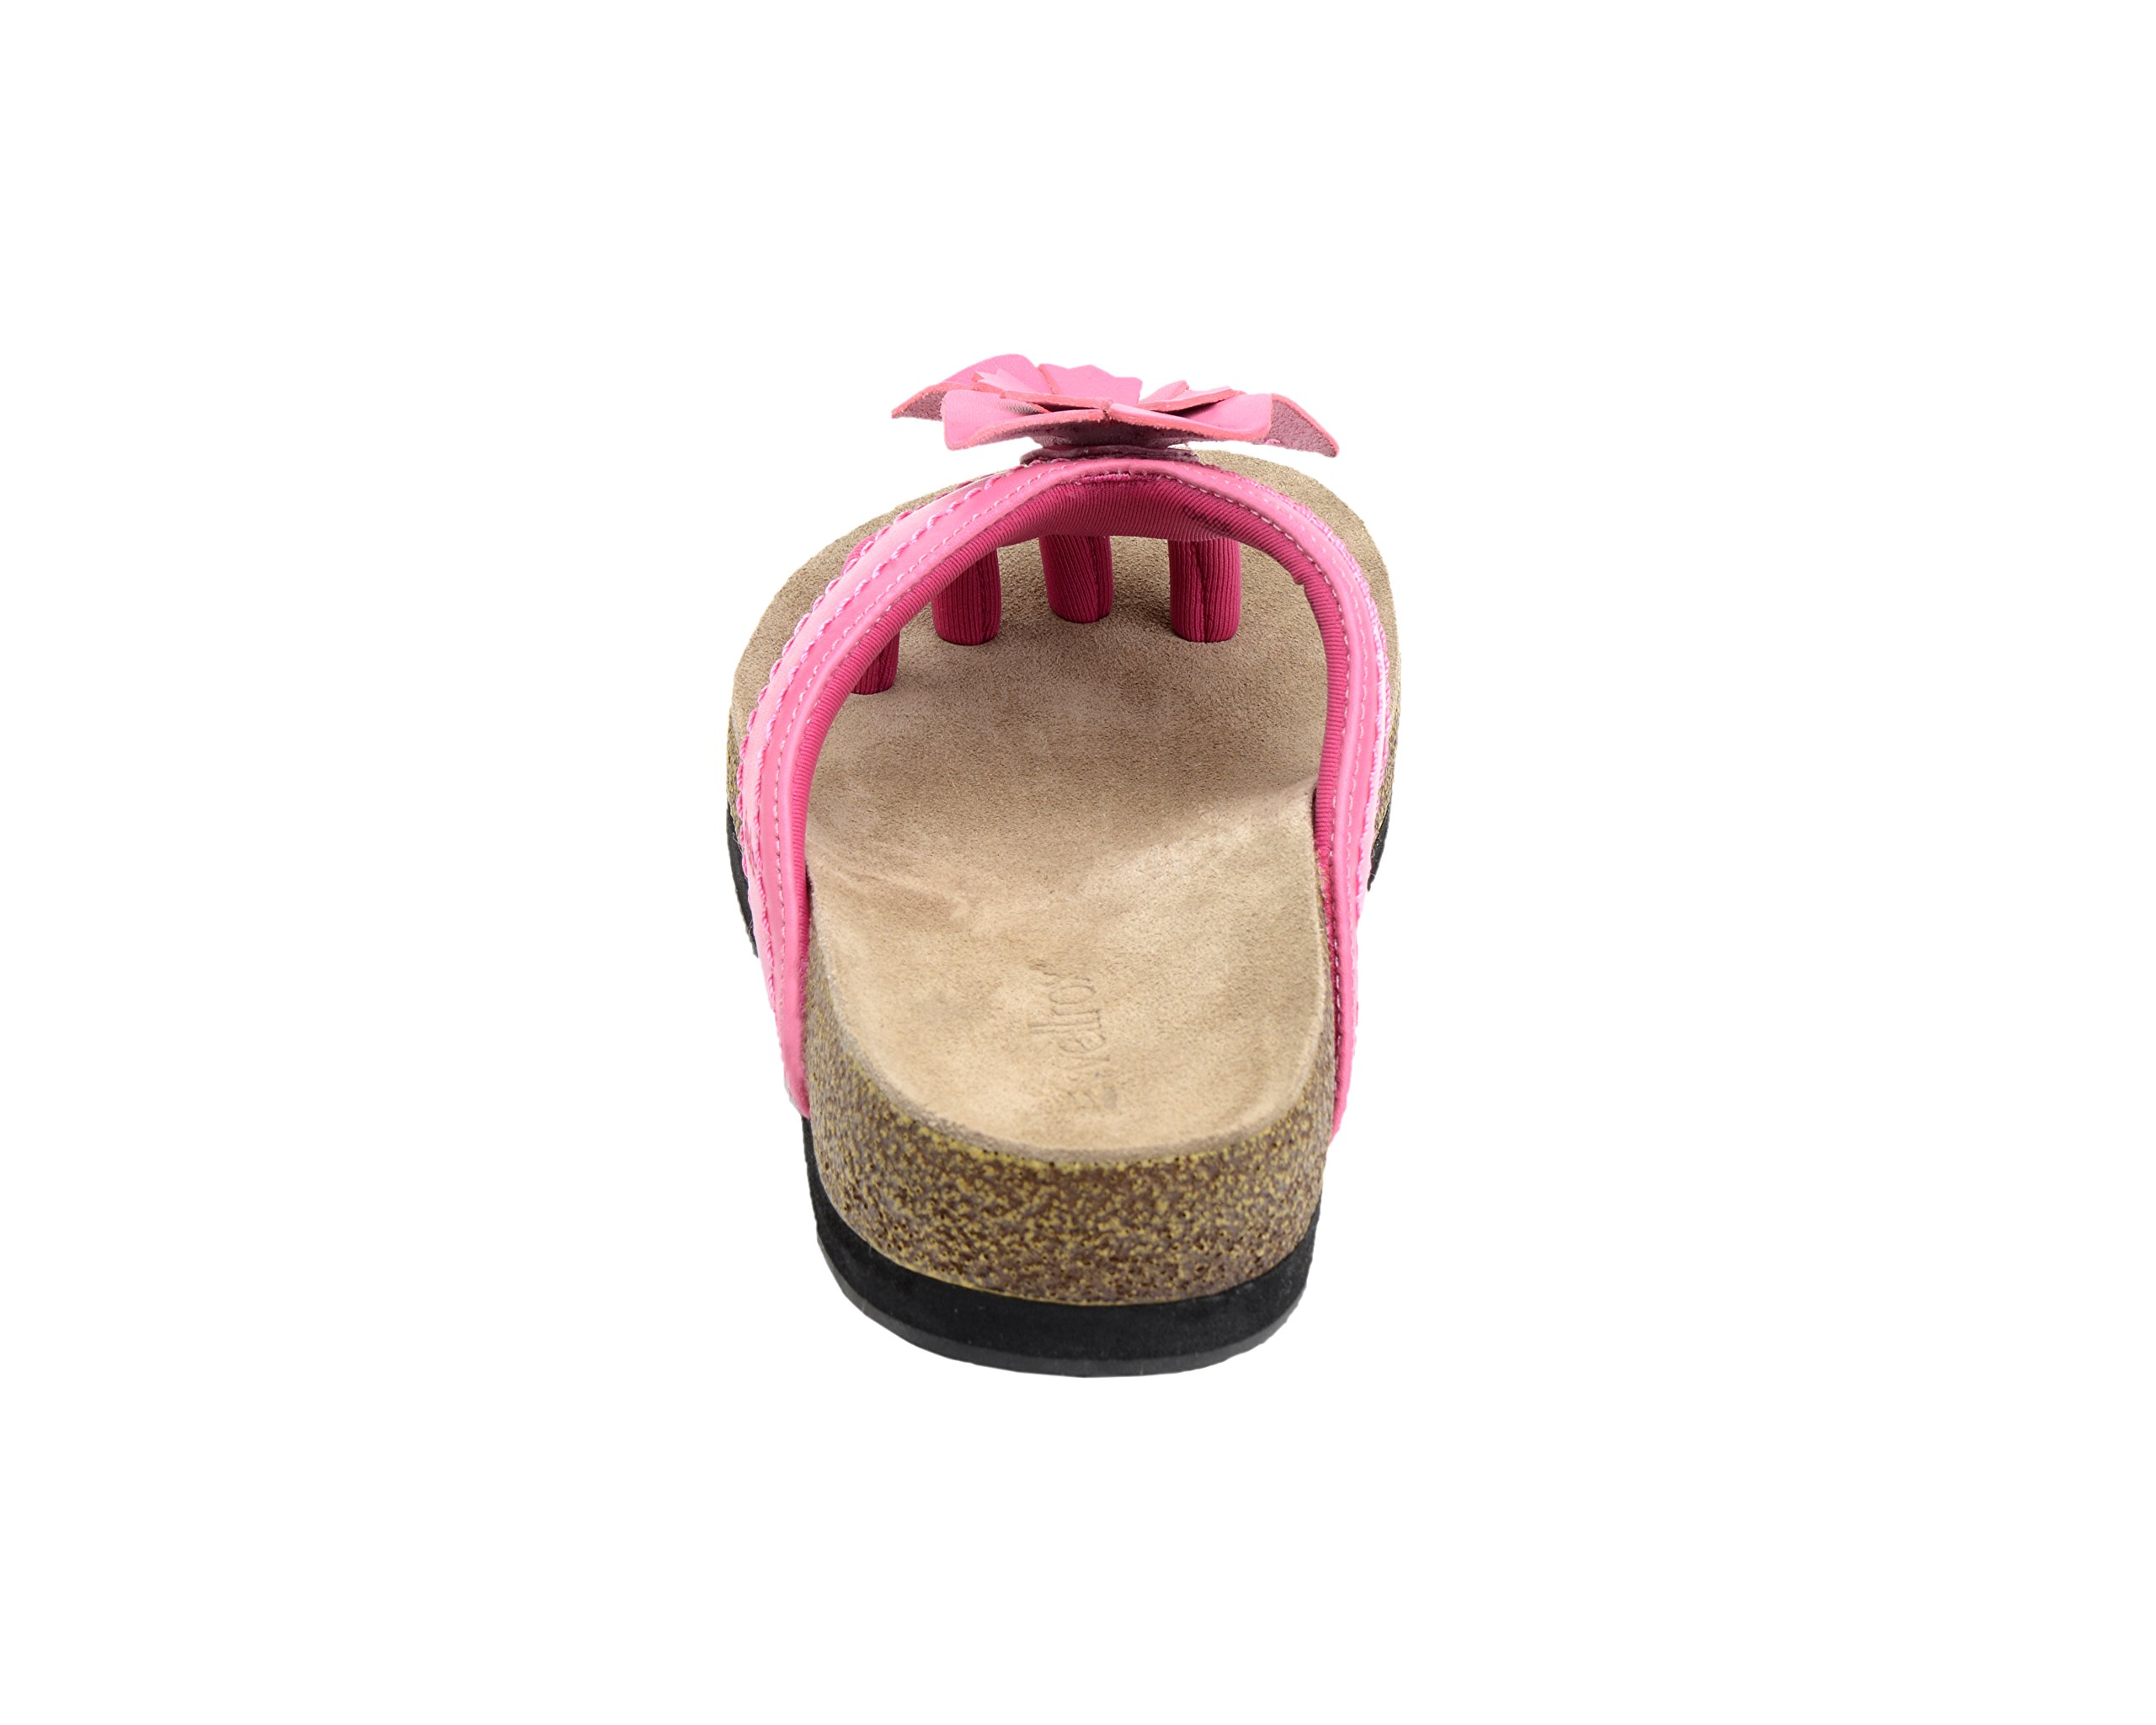 Wellrox Women's Terra-Chloe Hot Pink Casual Sandal 11 by Wellrox (Image #5)